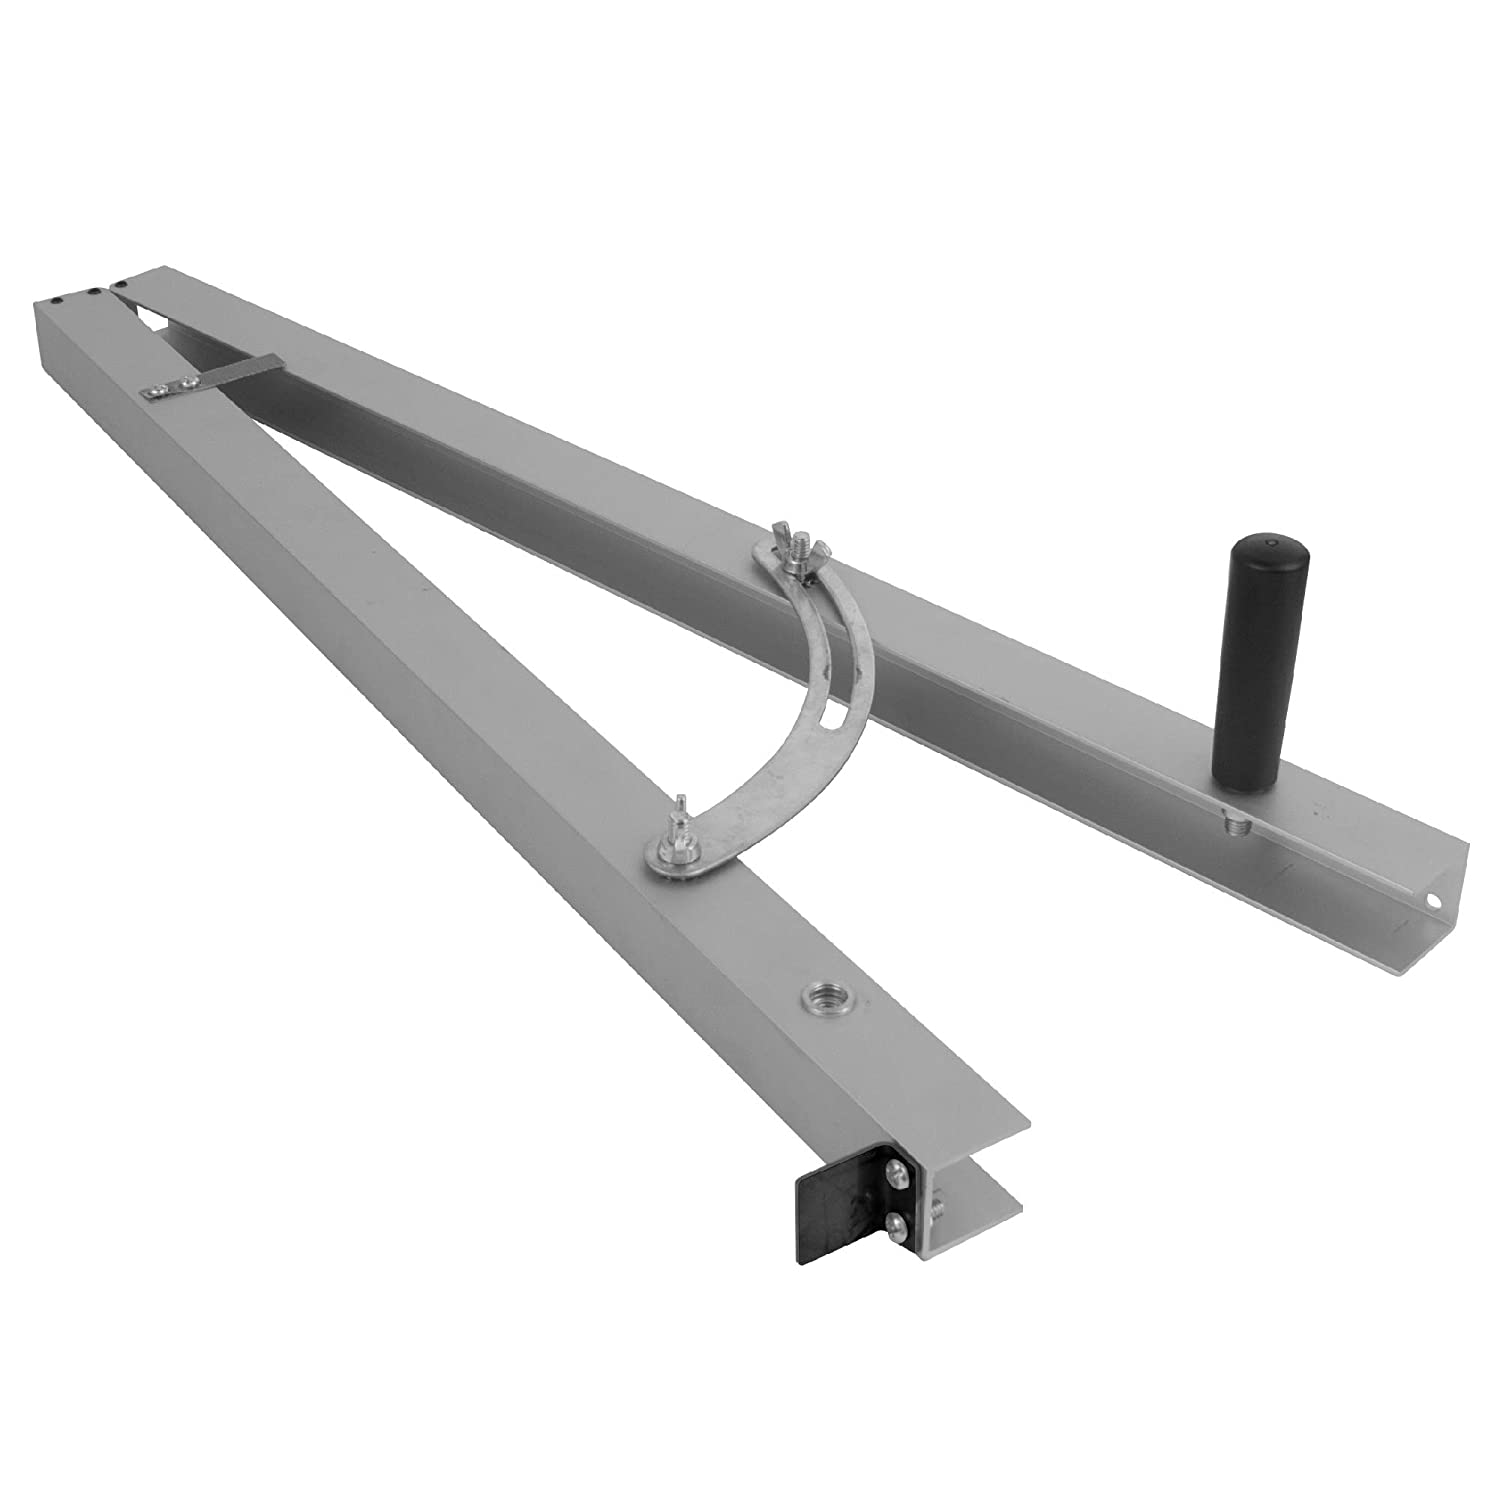 "Taper Cutting Jig for Creating Tapered Angles Up to 15 Degrees on Your Table Saw - 24"" Long Aluminum Rails with Scale and Stop"